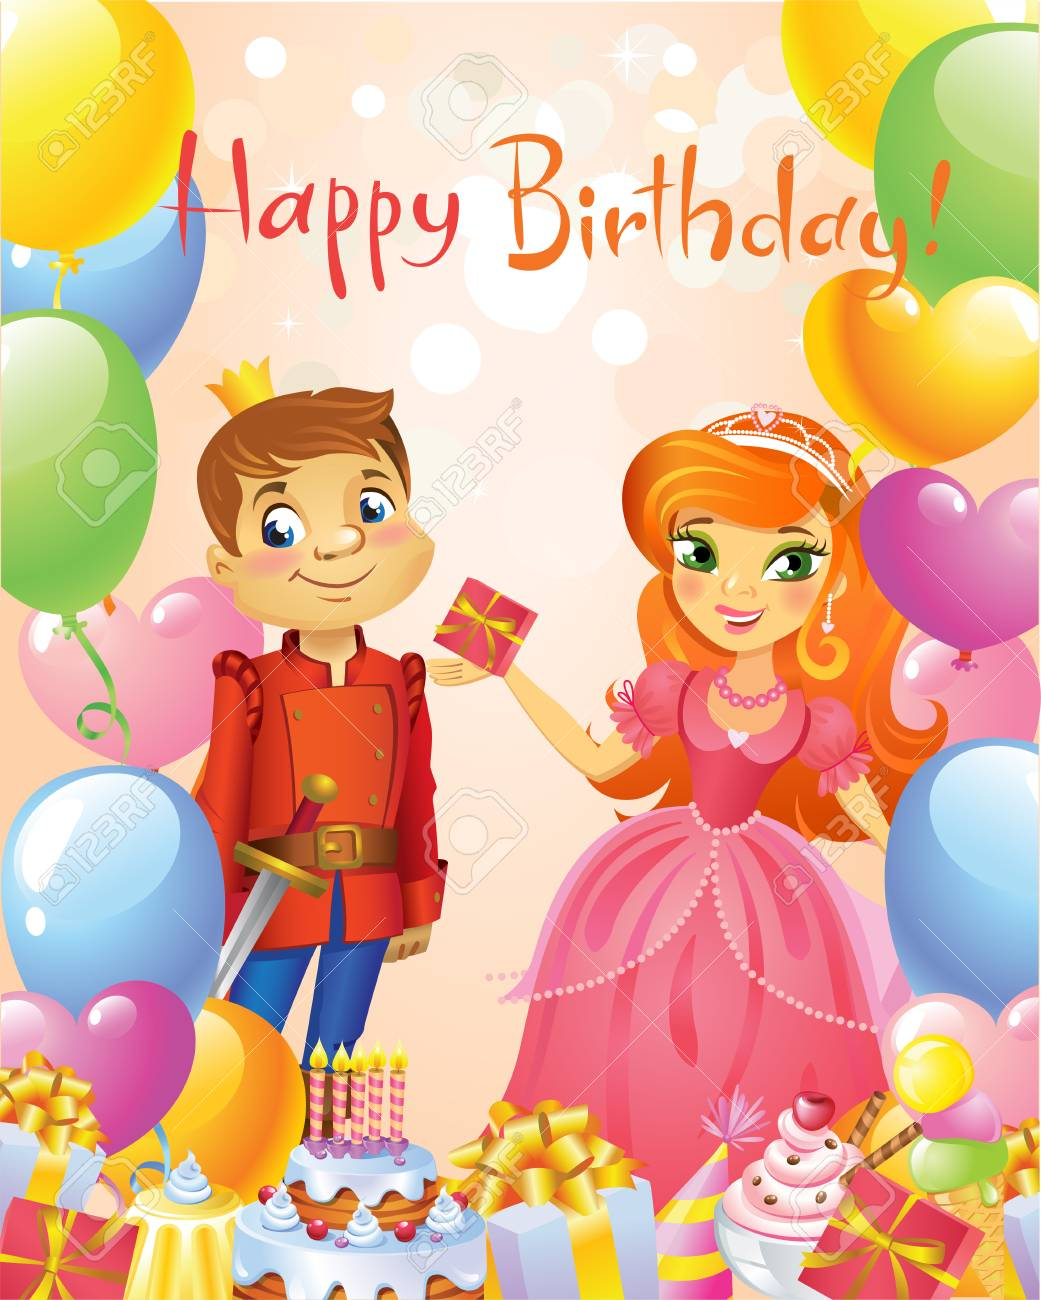 Happy Birthday Princess And Prince Greeting Card Royalty Free